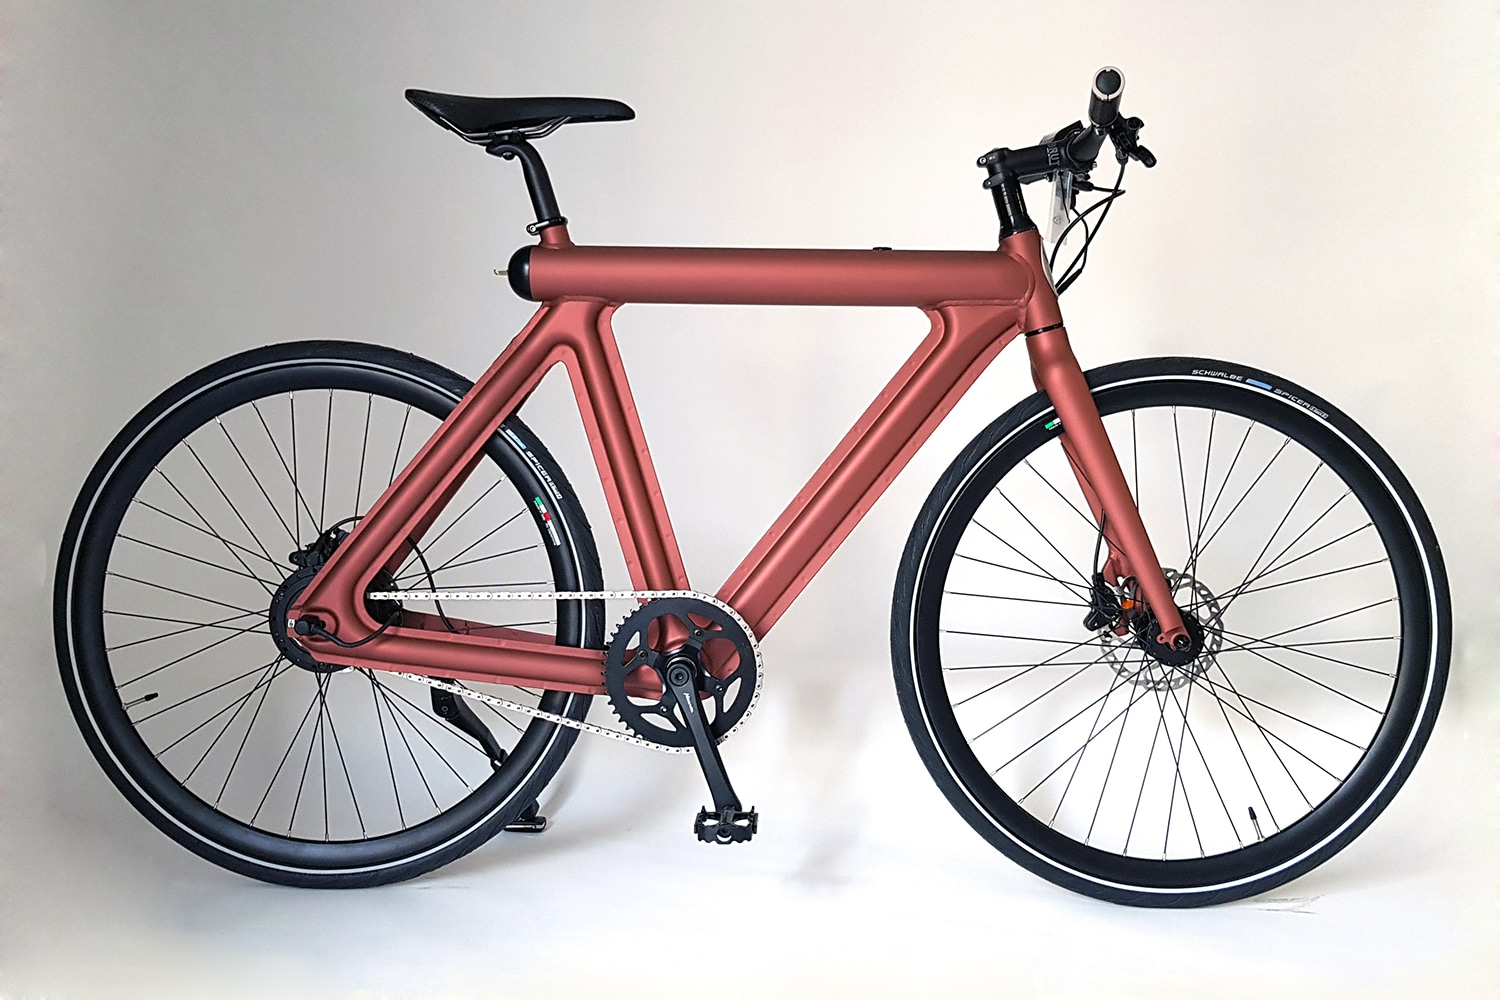 Leaos' Pressed E-Bike with an invisible drive weighs only 15 kg